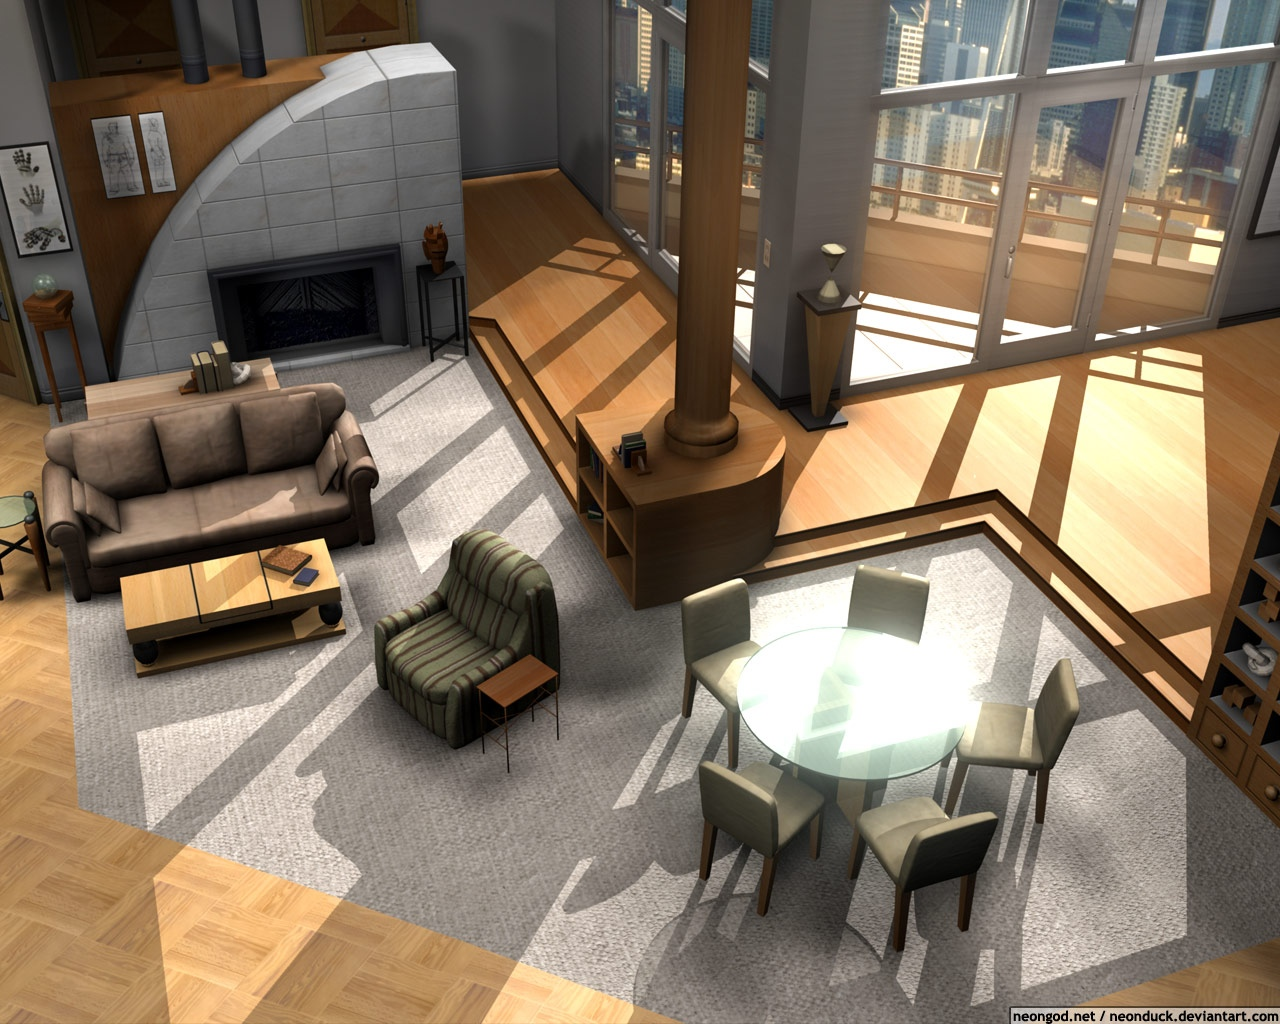 Floor plans of homes from famous tv shows for Apartment furniture